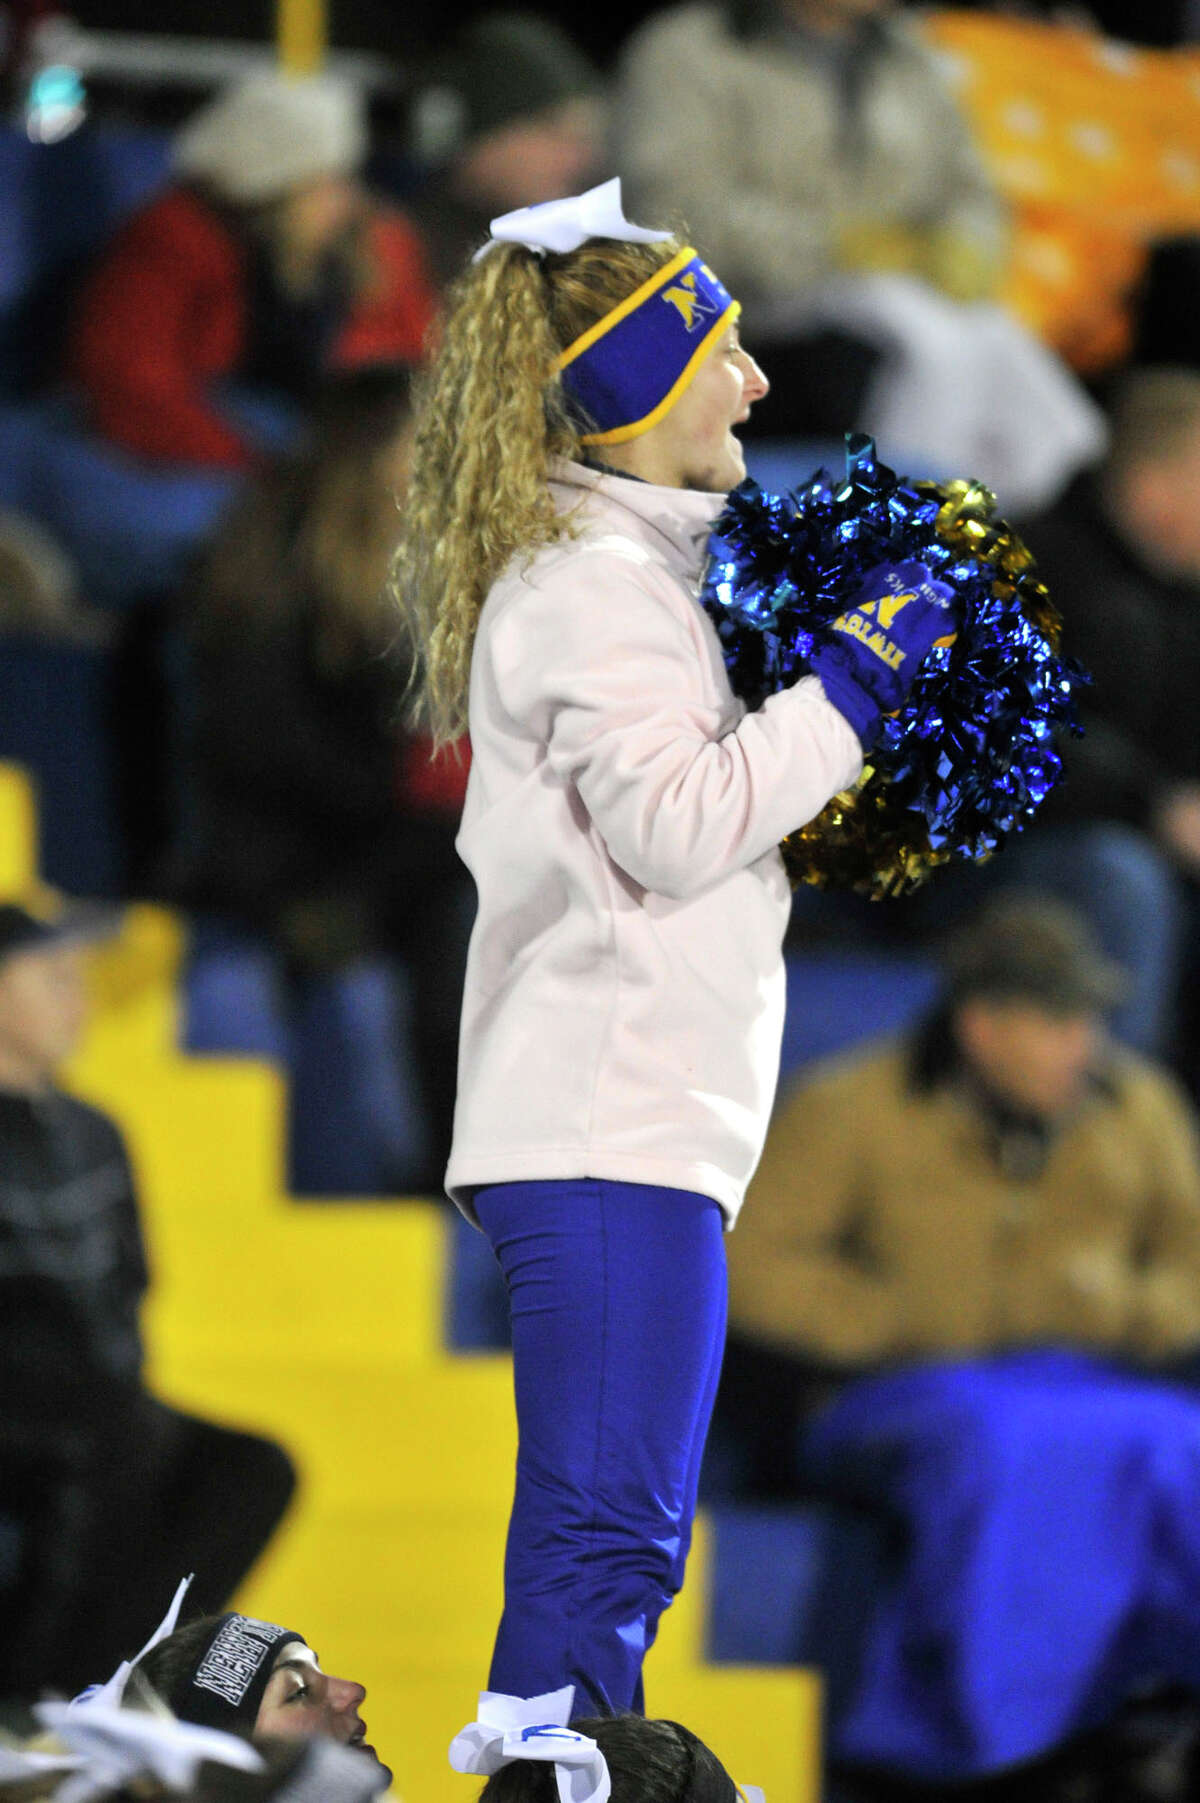 Scenes from the Norwich Free Academy at Newtown Class LL state quarterfinal game on Wednesday, Nov. 28, 2012.